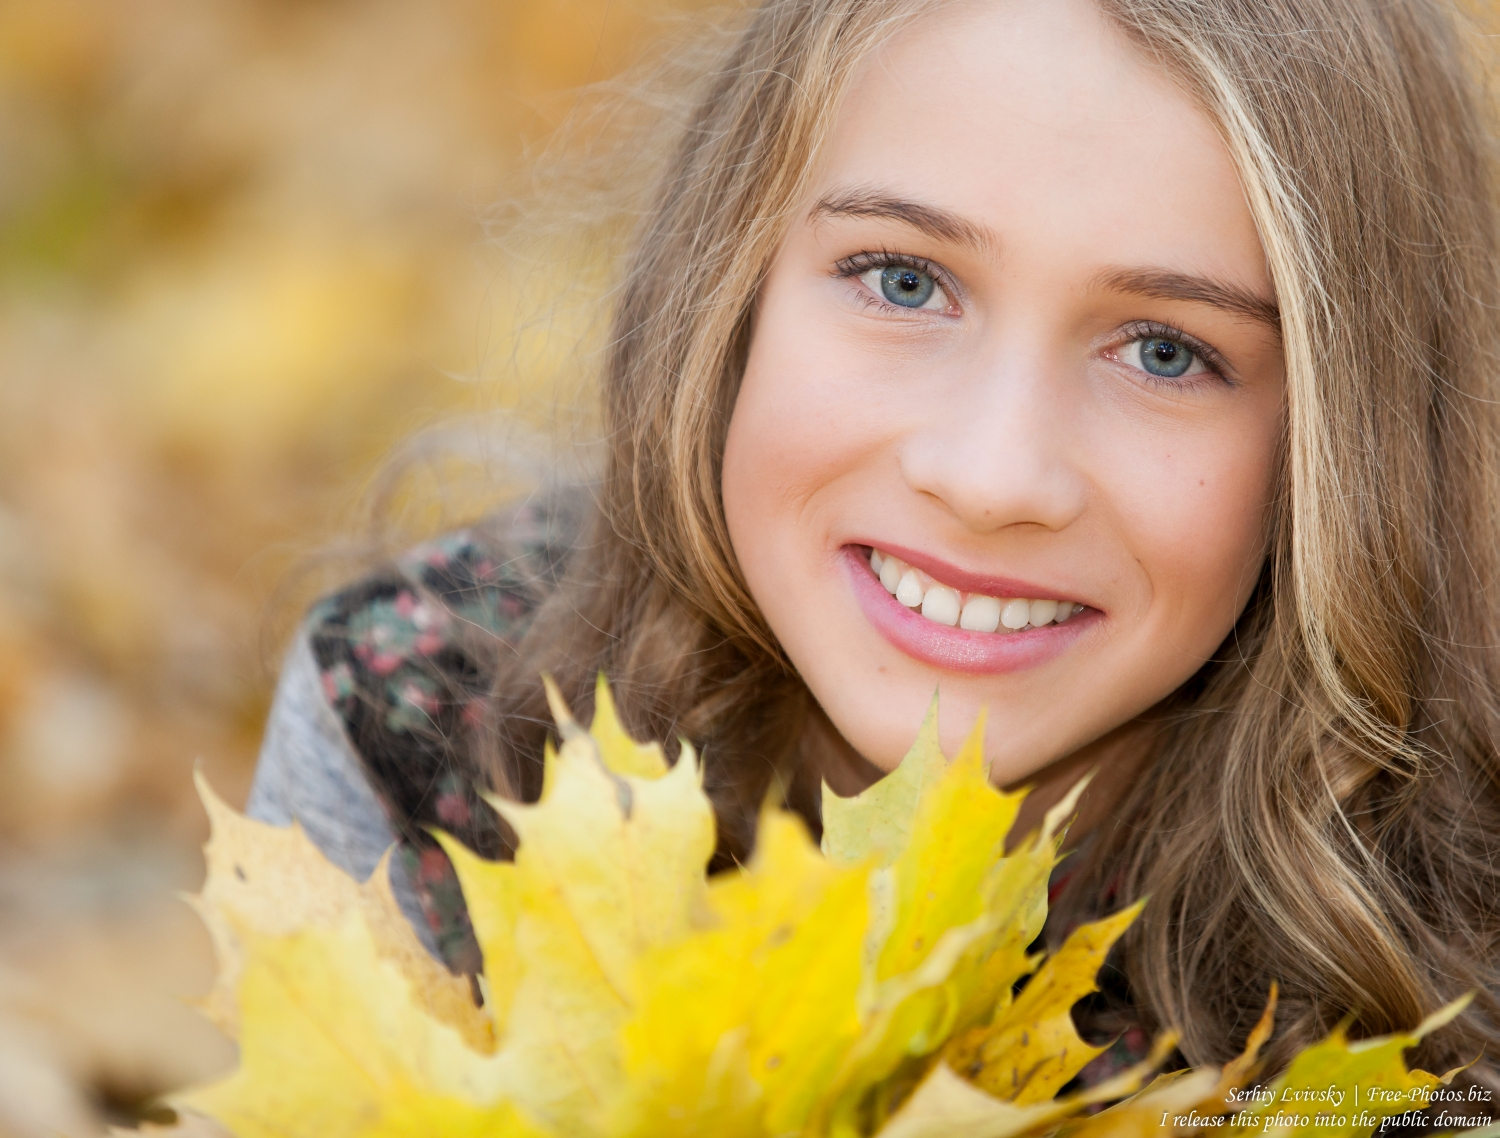 a 13-year-old girl photographed by Serhiy Lvivsky in October 2015